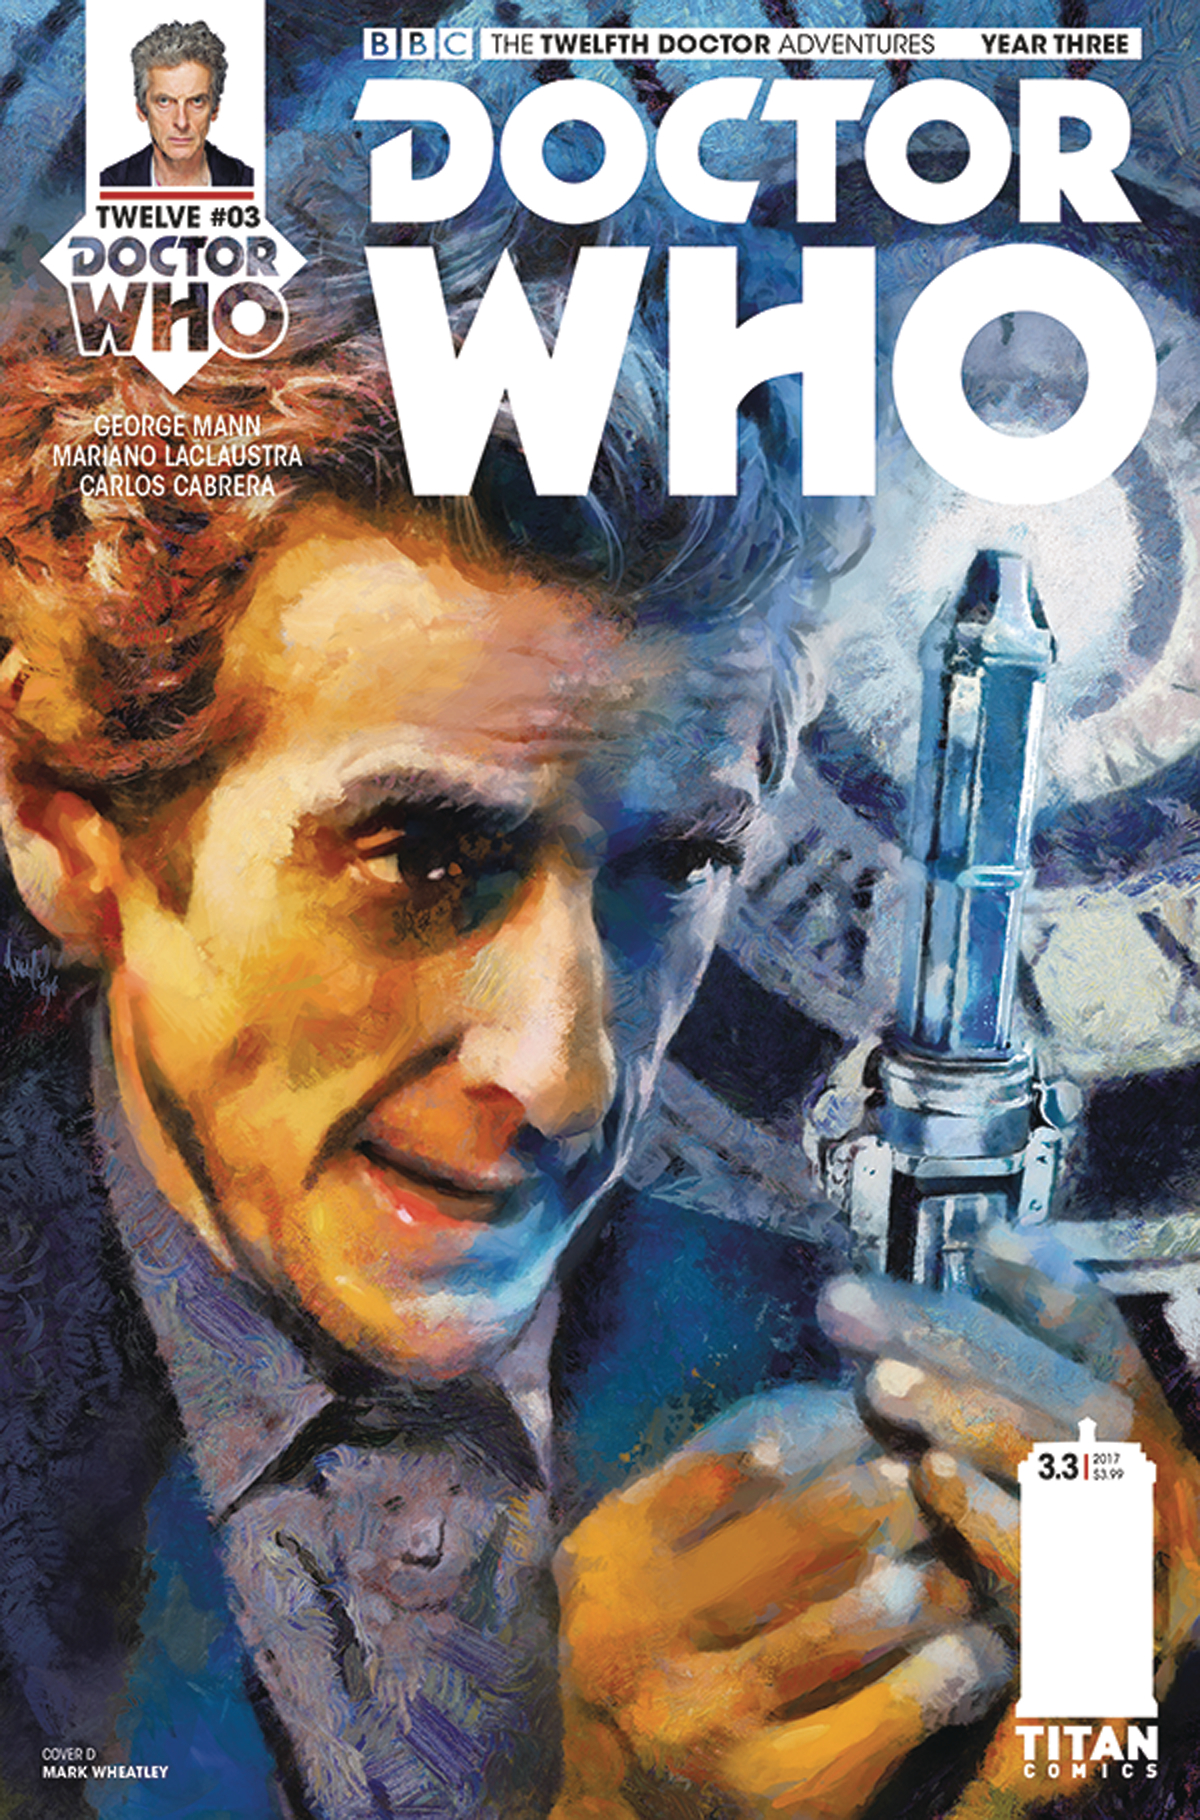 DOCTOR WHO 12TH YEAR THREE #3 CVR D WHEATLEY